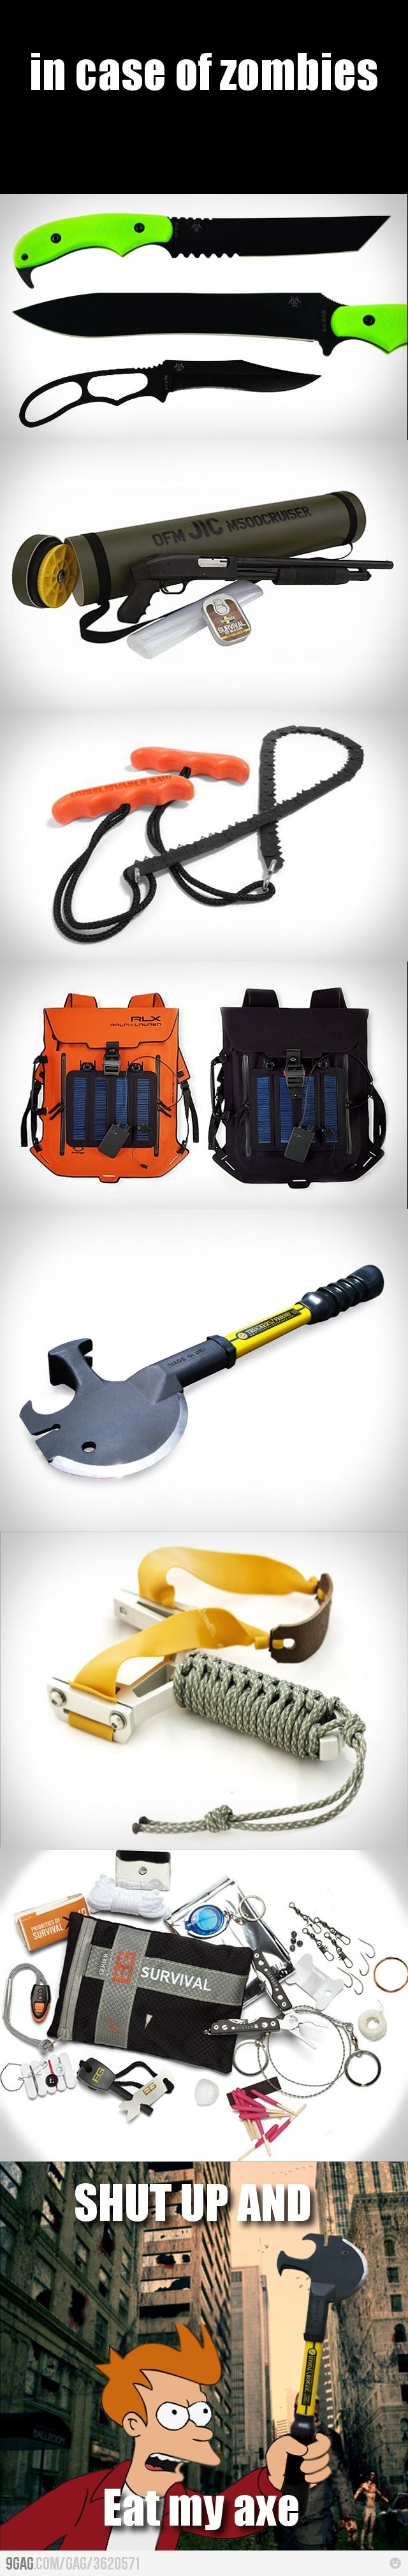 Zombie Apocalypse survival gear is ALWAYS cool..